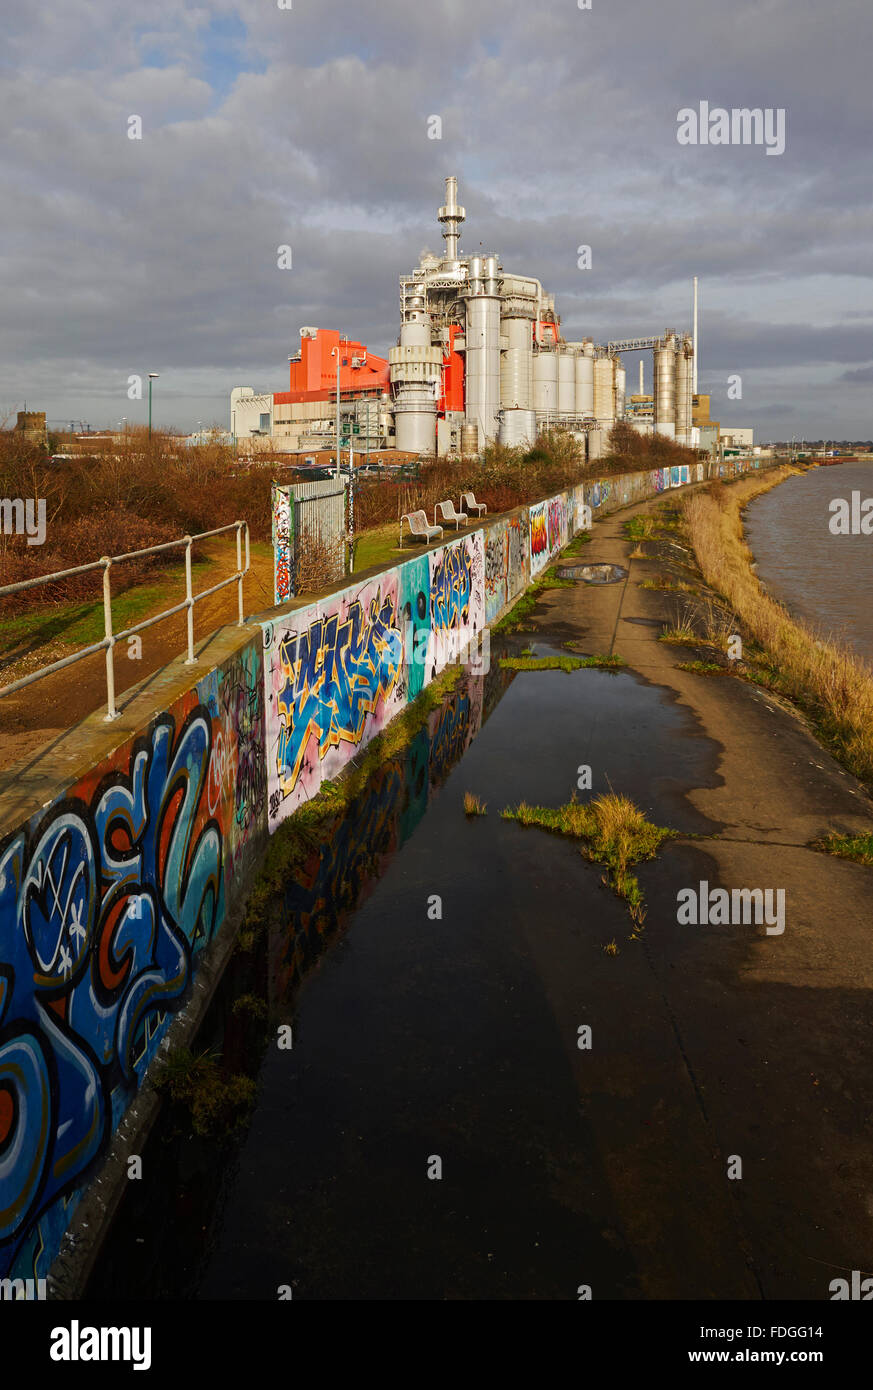 Procter & Gamble plant West Thurrock with graffiti covered wall on the river Thames near the Dartford crossing - Stock Image